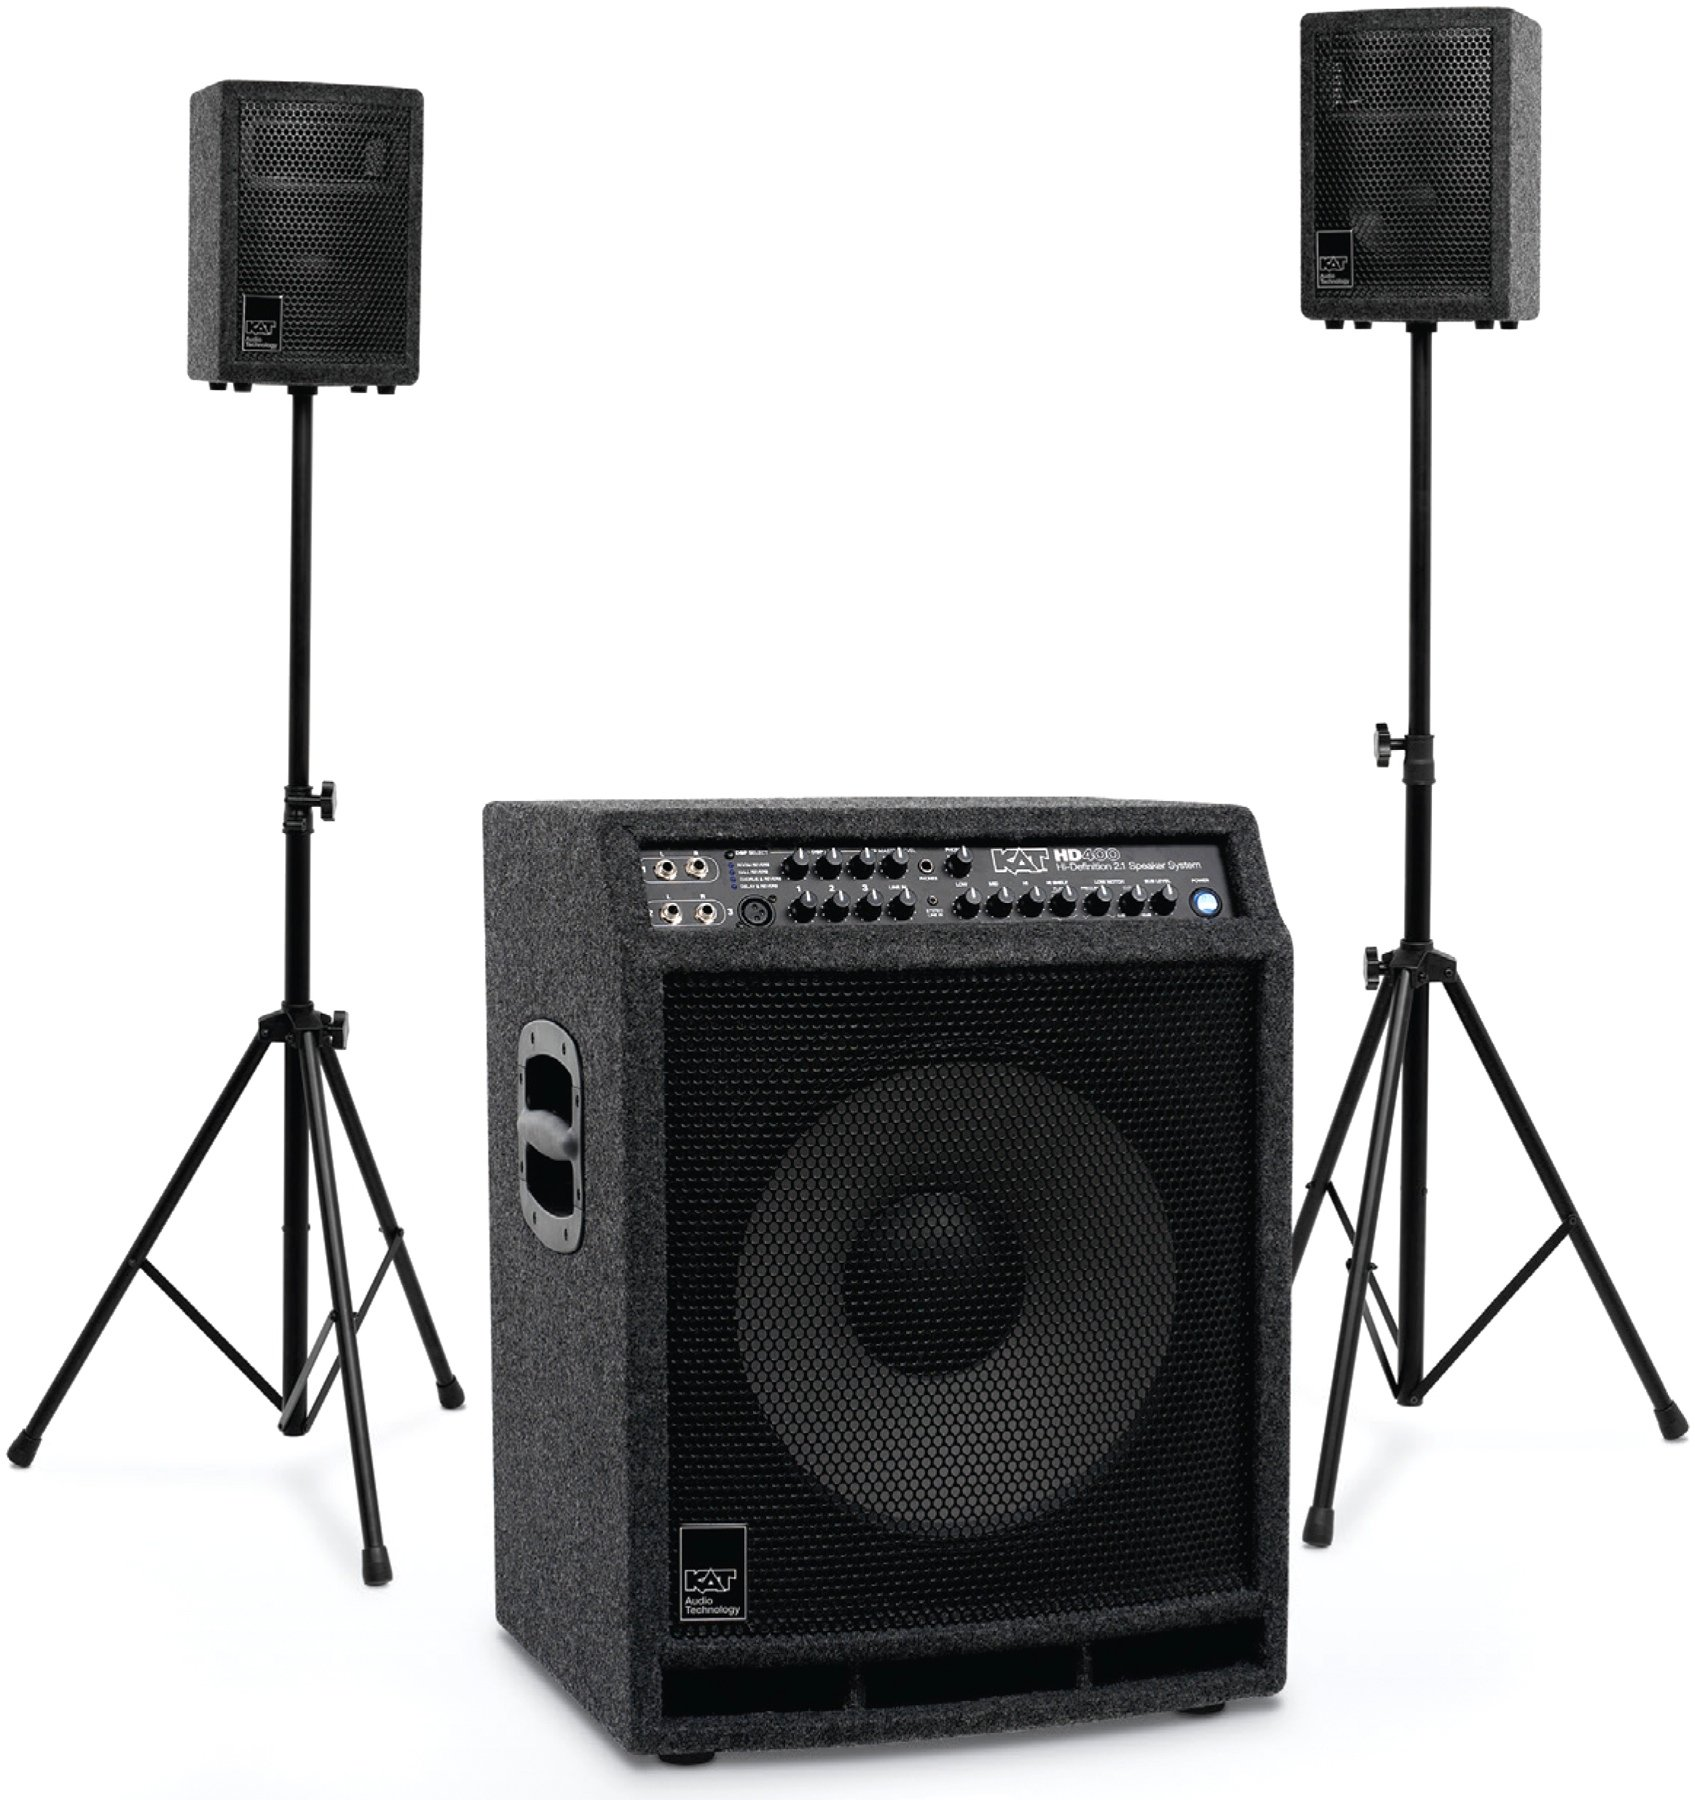 Kat Percussion 400 Watt 21 Stereo Drum Sound System Sweetwater Guitar Or Music Amplifier Home Powered Subwoofer Image 1